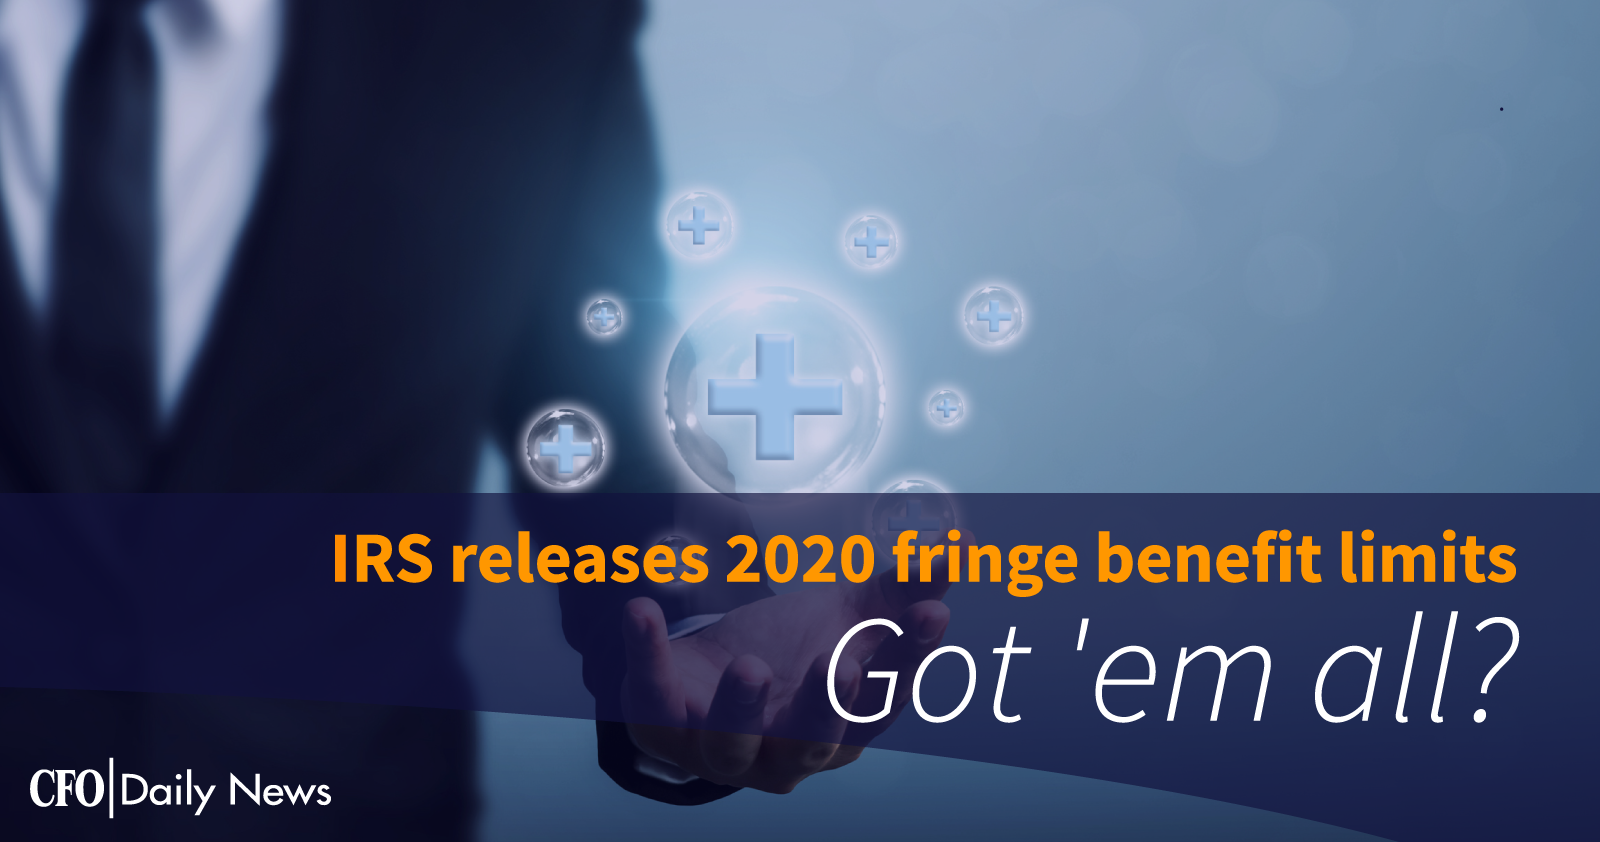 IRS releases 2020 fringe benefit limits